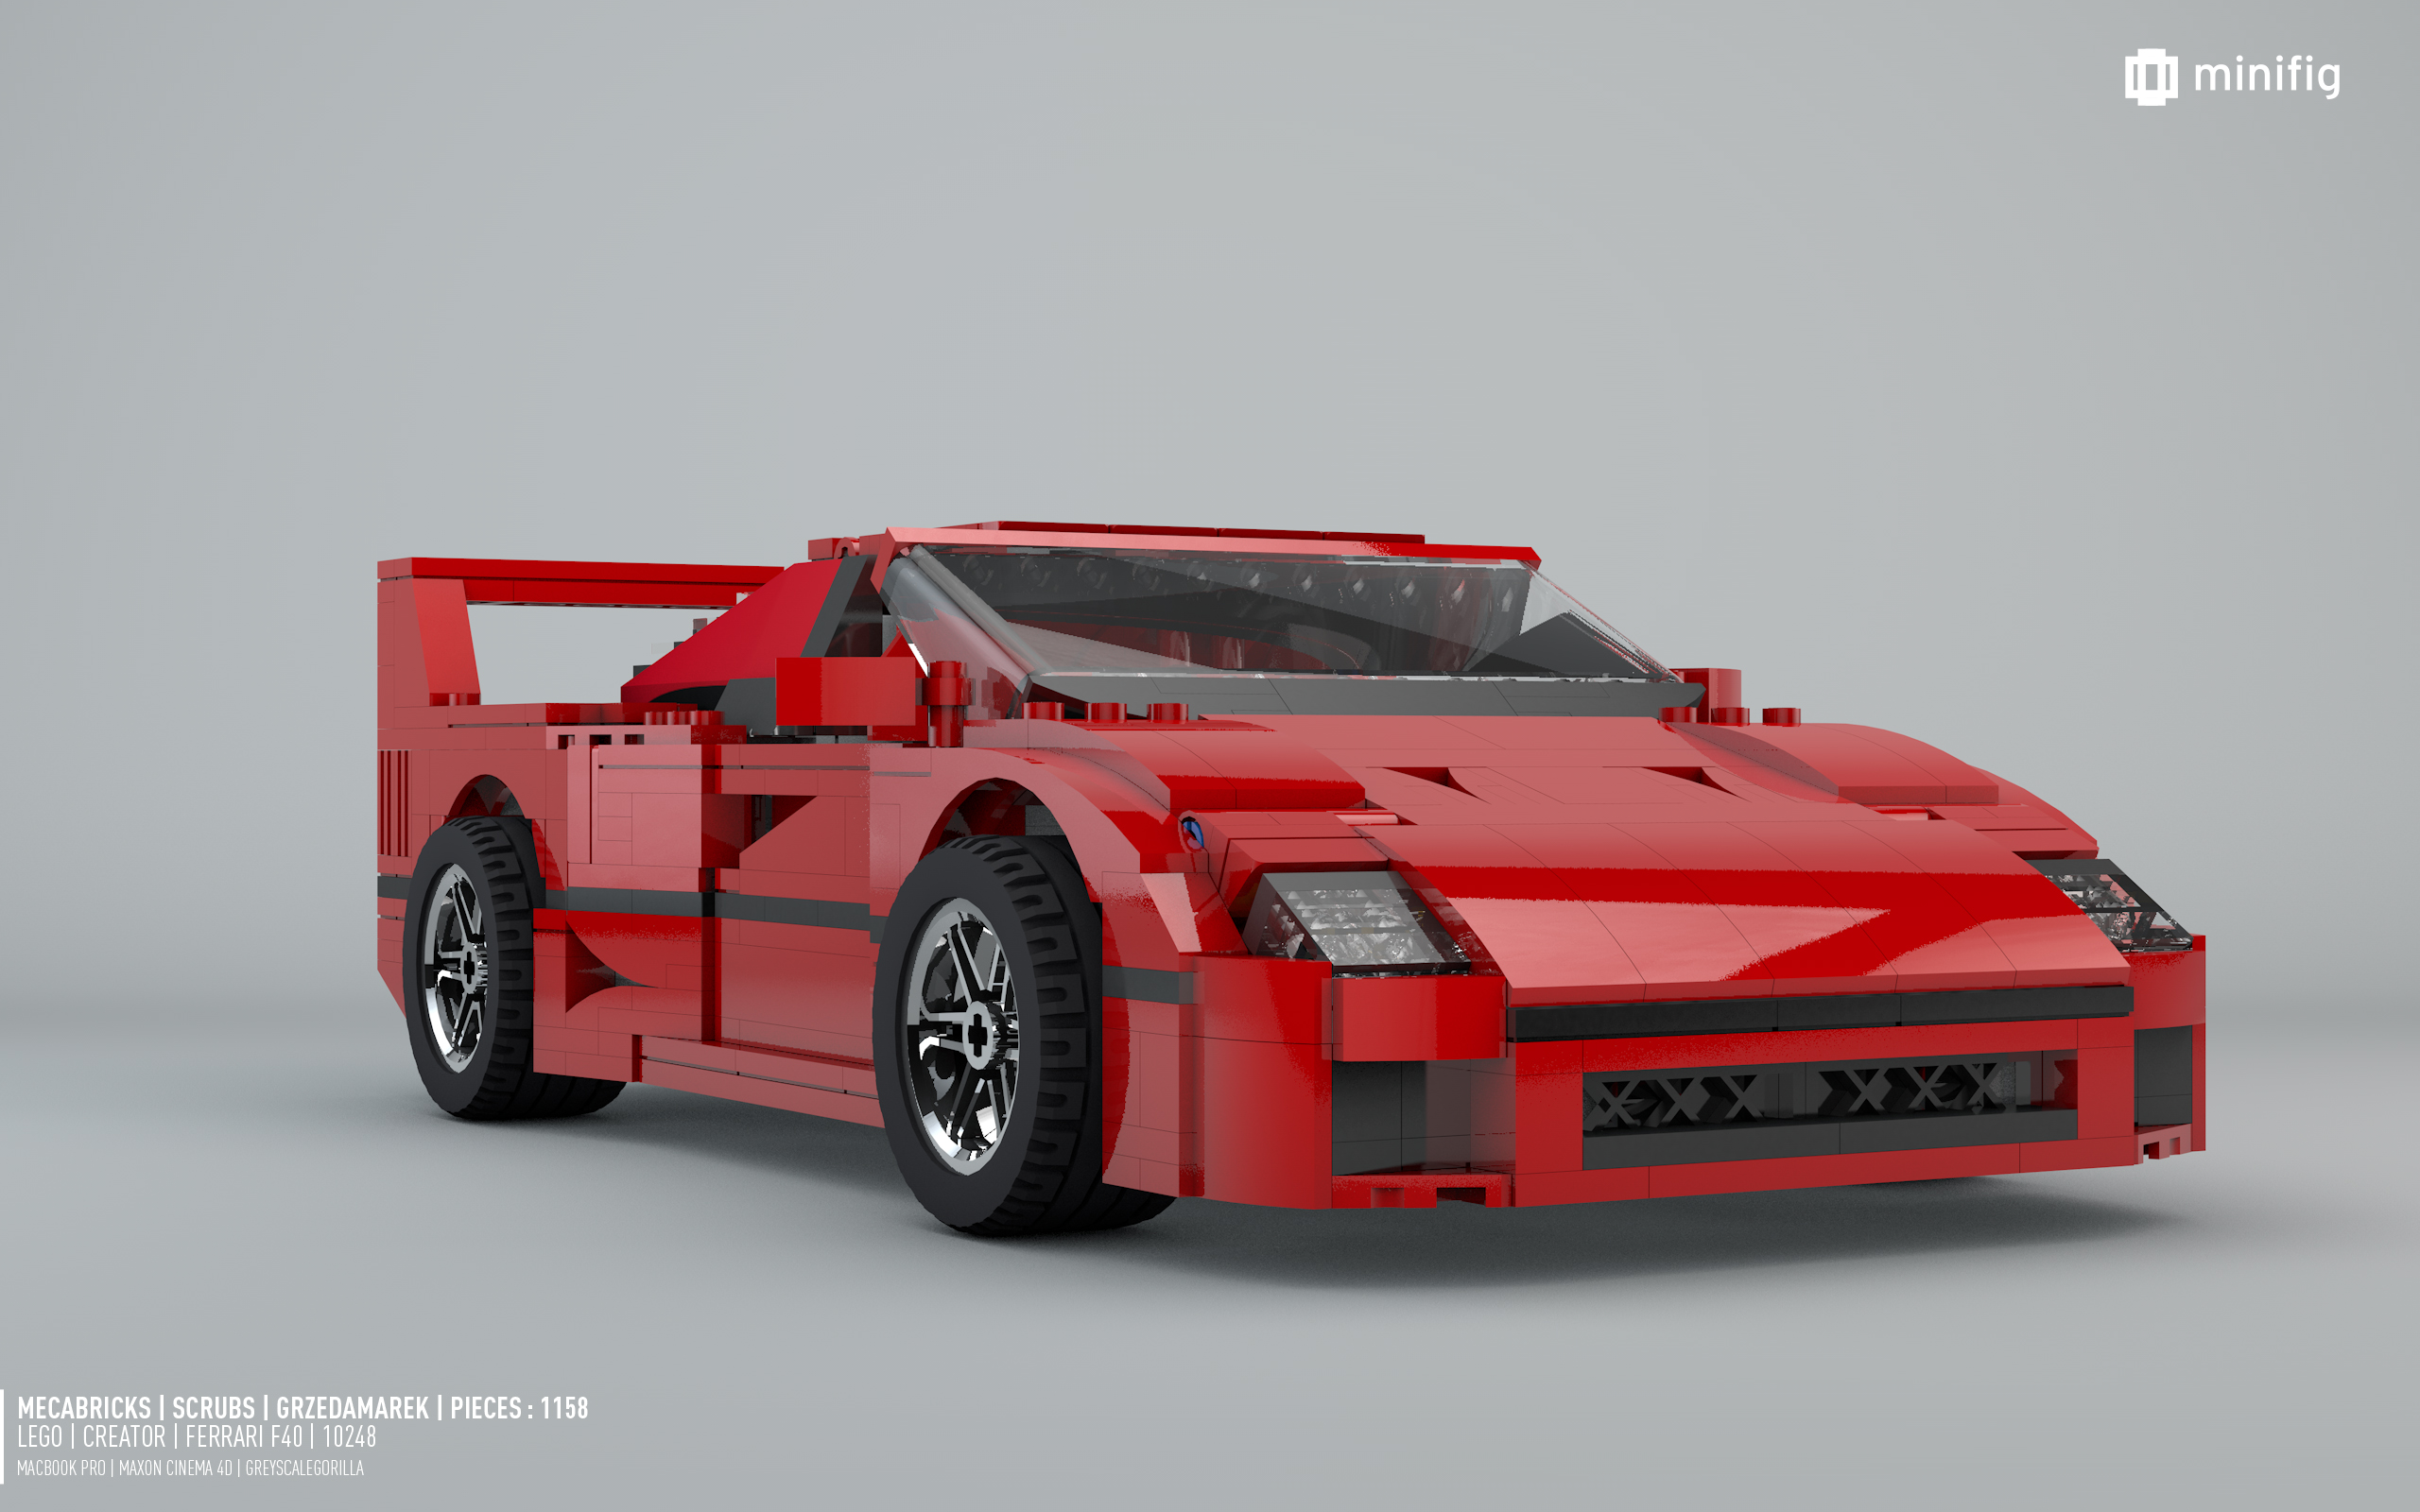 ferrari f40 10248 lego creator lego 3d review www. Black Bedroom Furniture Sets. Home Design Ideas